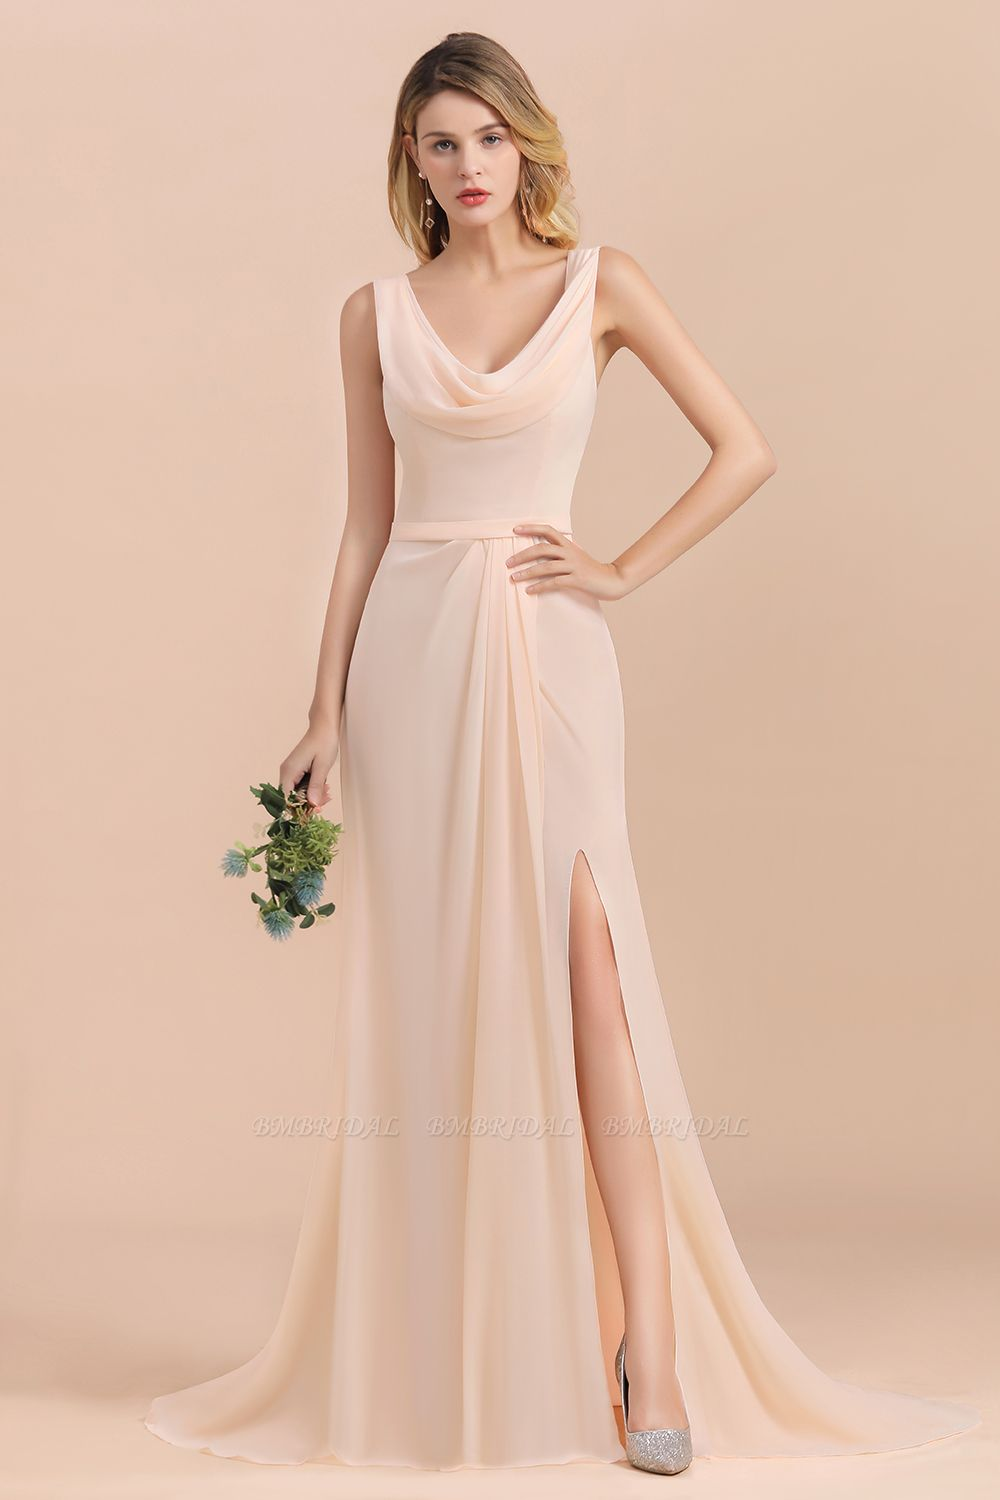 https://www.bmbridal.com/gorgeous-drapped-neckline-ruffle-chiffon-bridesmaid-dresses-online-with-slit-g763?cate_1=4?utm_source=blog&utm_medium=Lyosha&utm_campaign=post&source=Lyosha